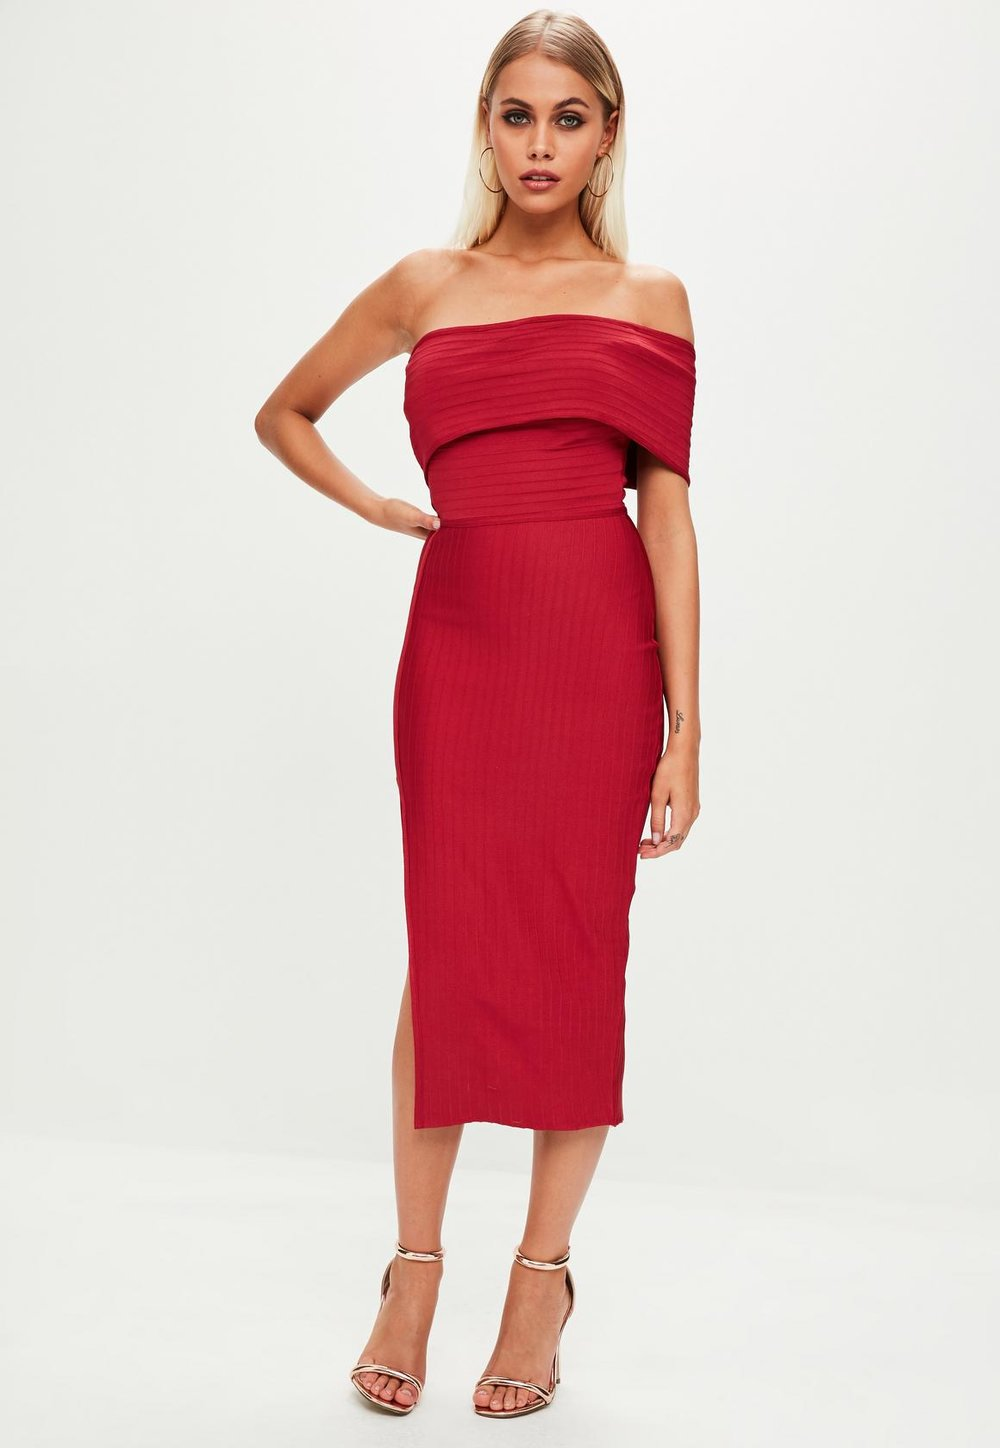 red-bandage-one-shoulder-split-midi-dress.jpg